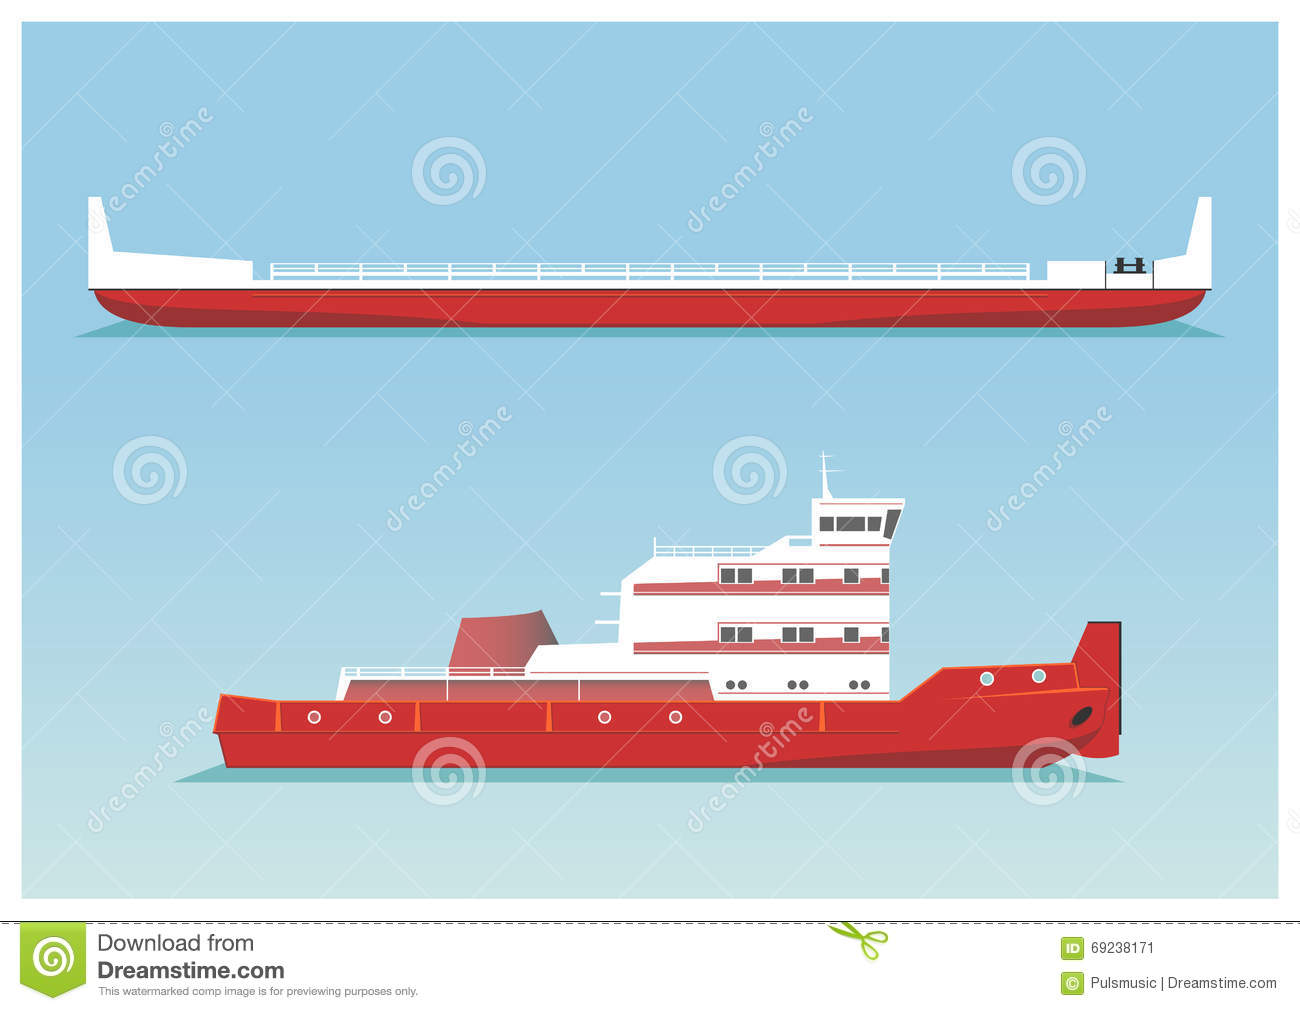 hight resolution of tugboat and barge vector illustration eps 10 opacity stock illustration